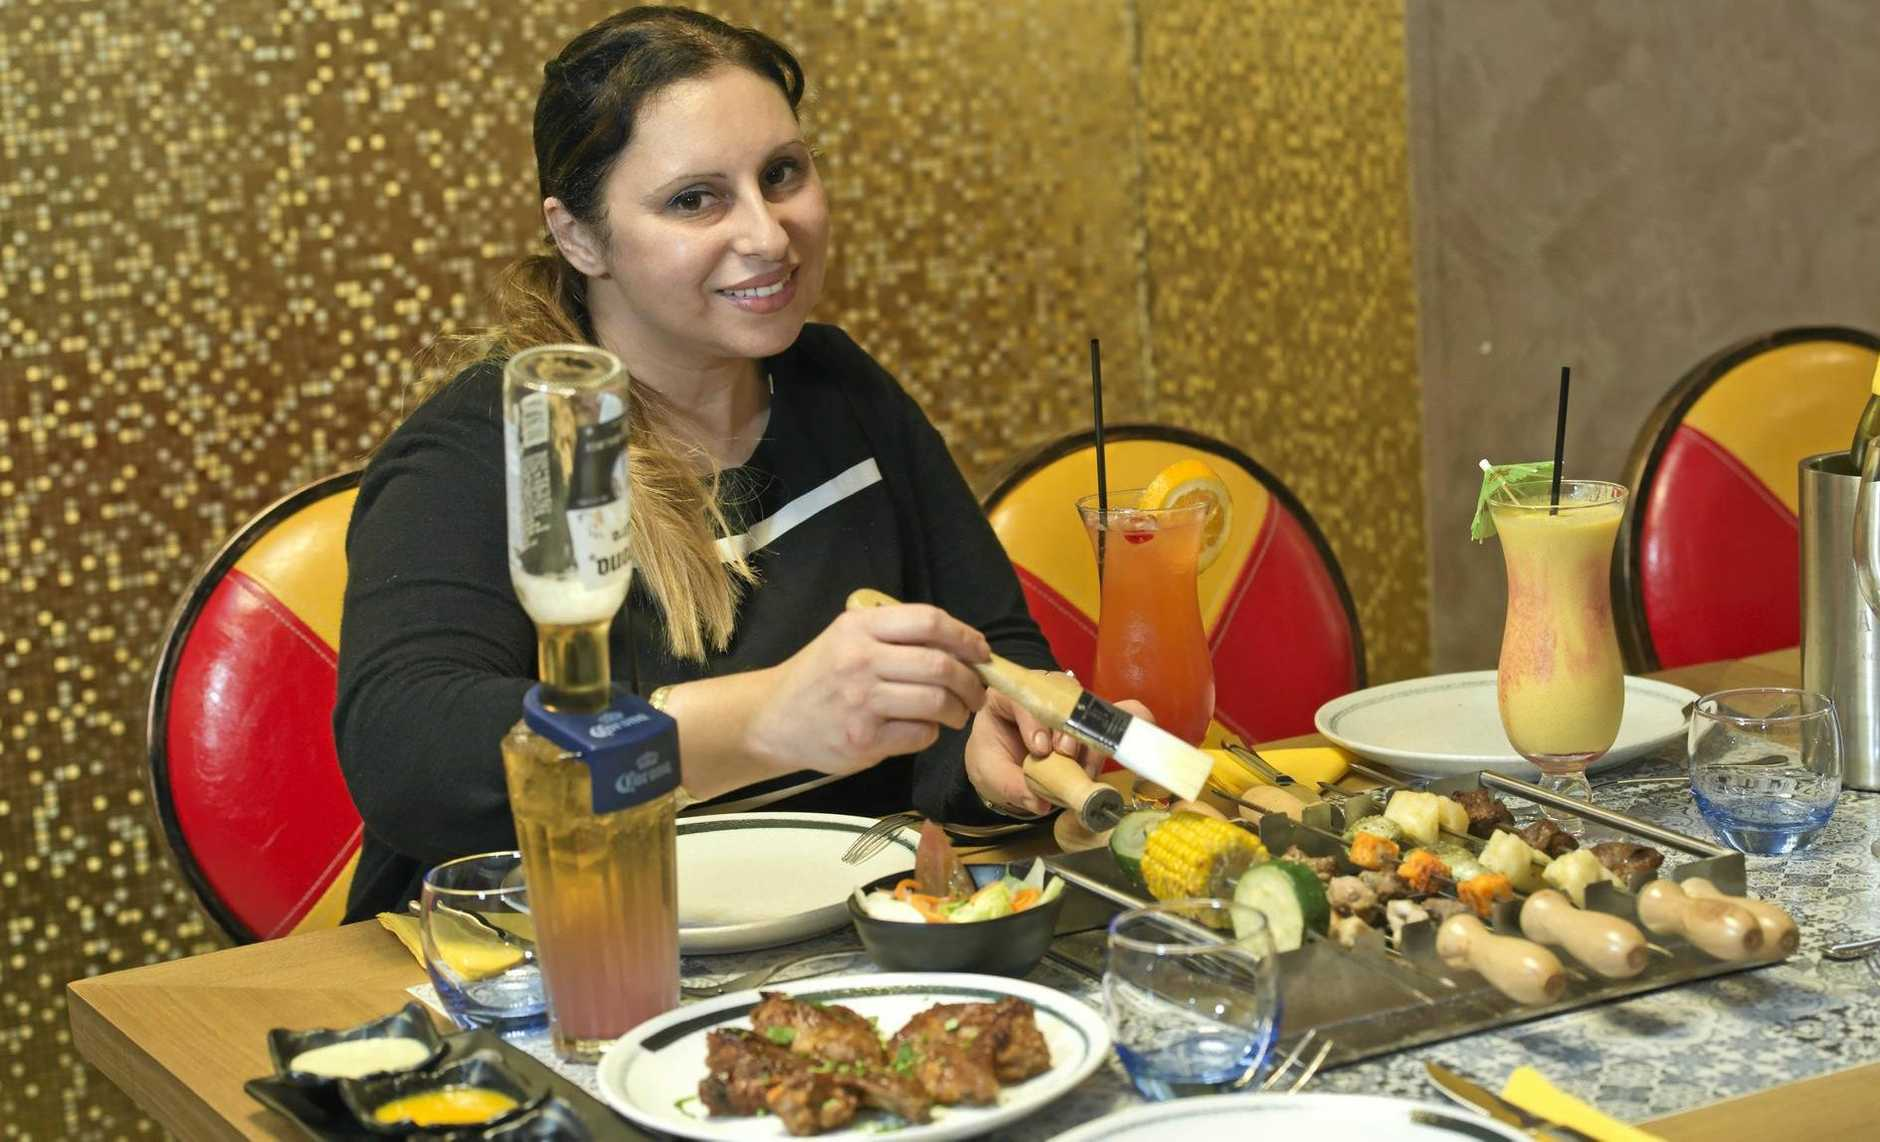 DO IT YOURSELF: Absolute Grill co-owner Nadia Madan demonstrates the concept of over-the-table live grill barbecuing.